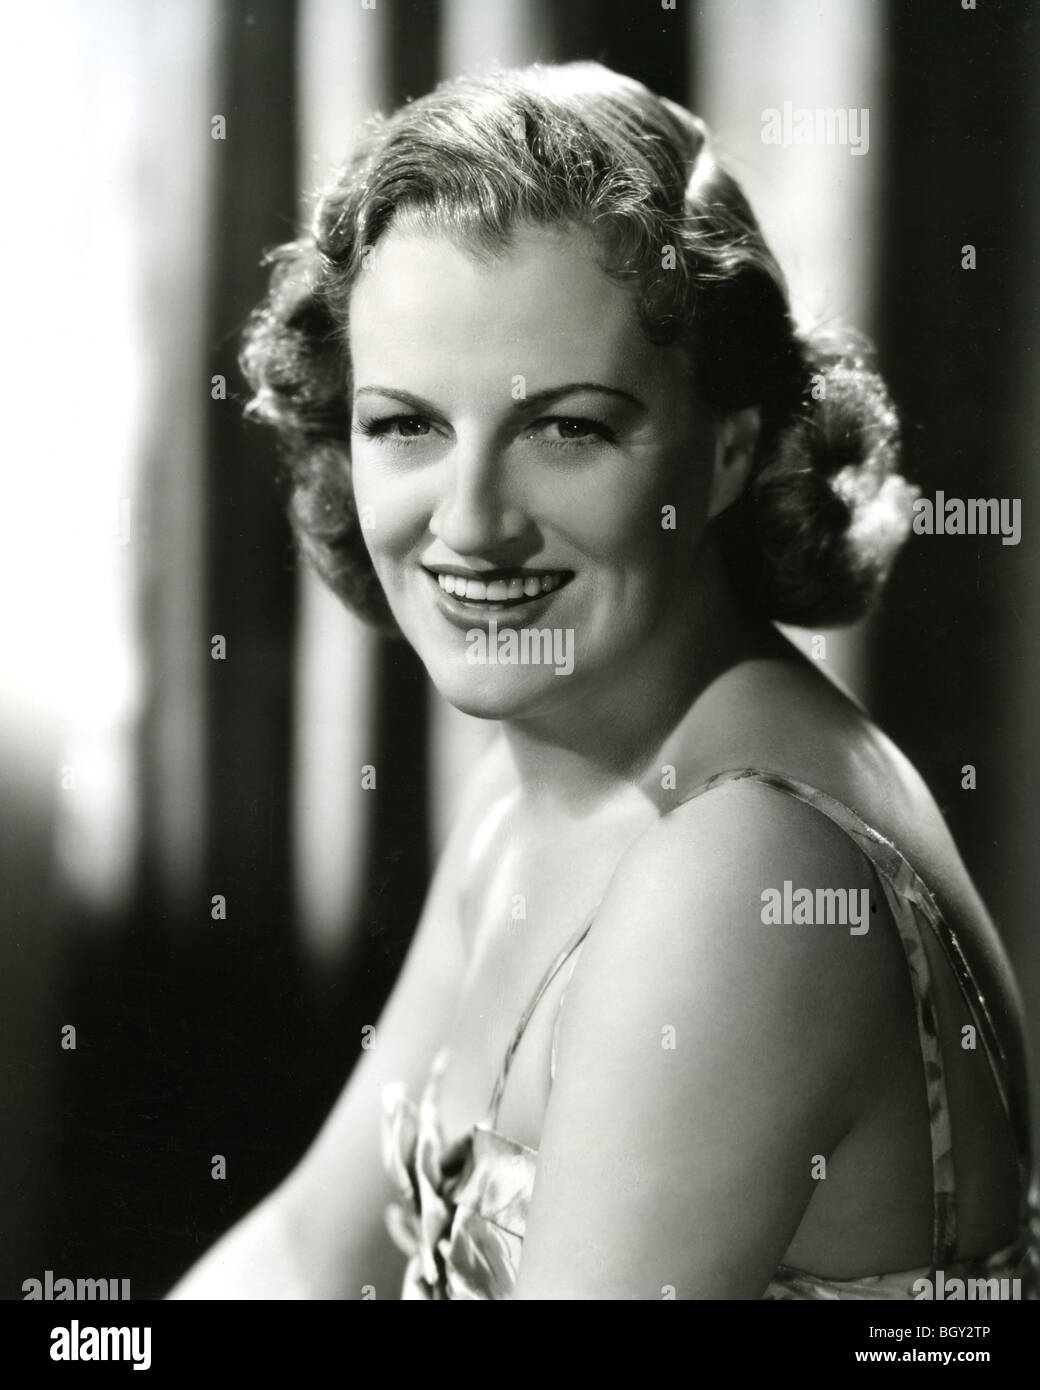 1930s Artist Stock Photos & 1930s Artist Stock Images - Alamy